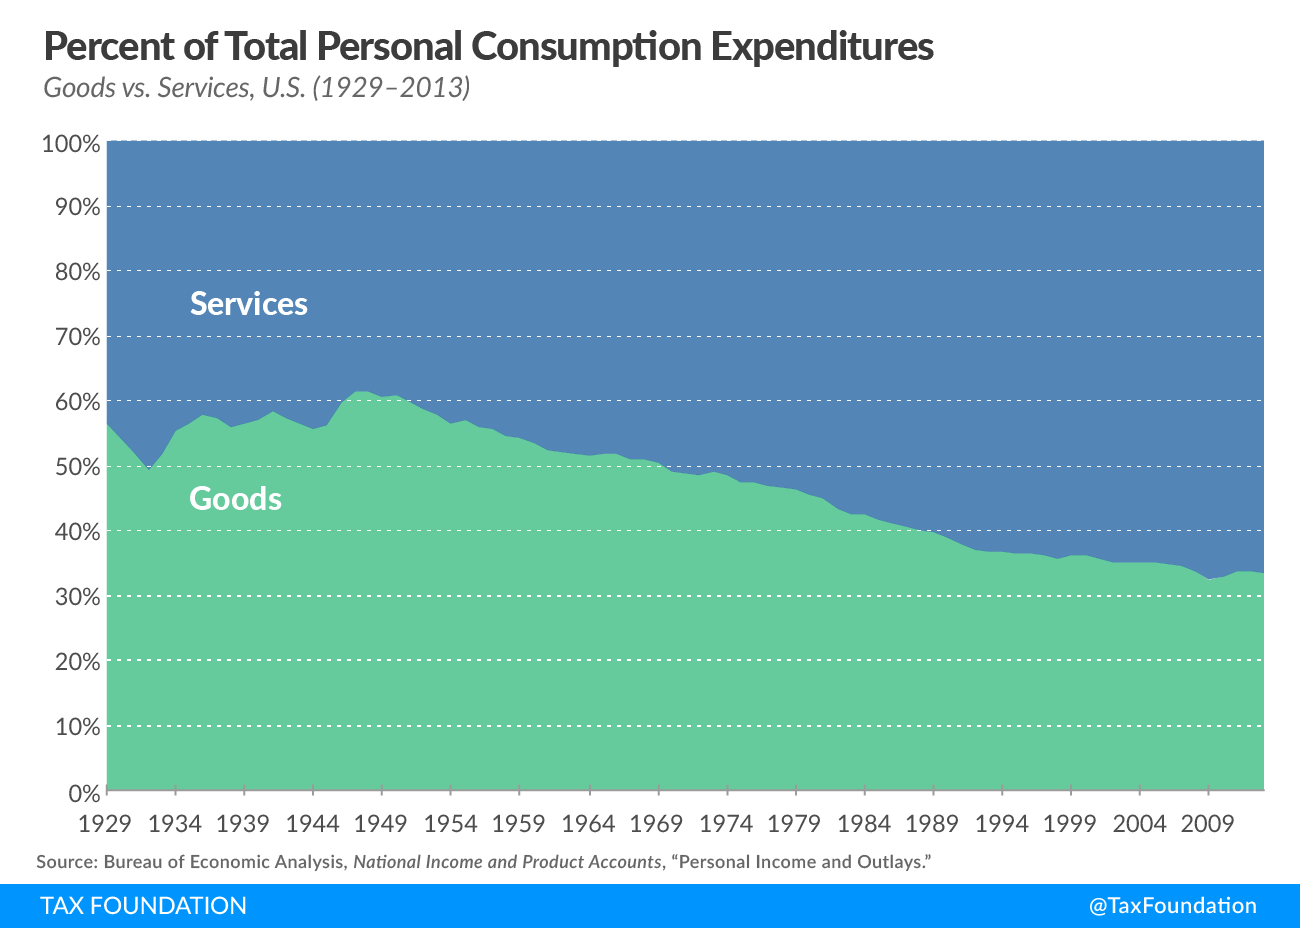 Percent of Total Personal Consumption Expenditures - Goods vs. Services - Sales Tax